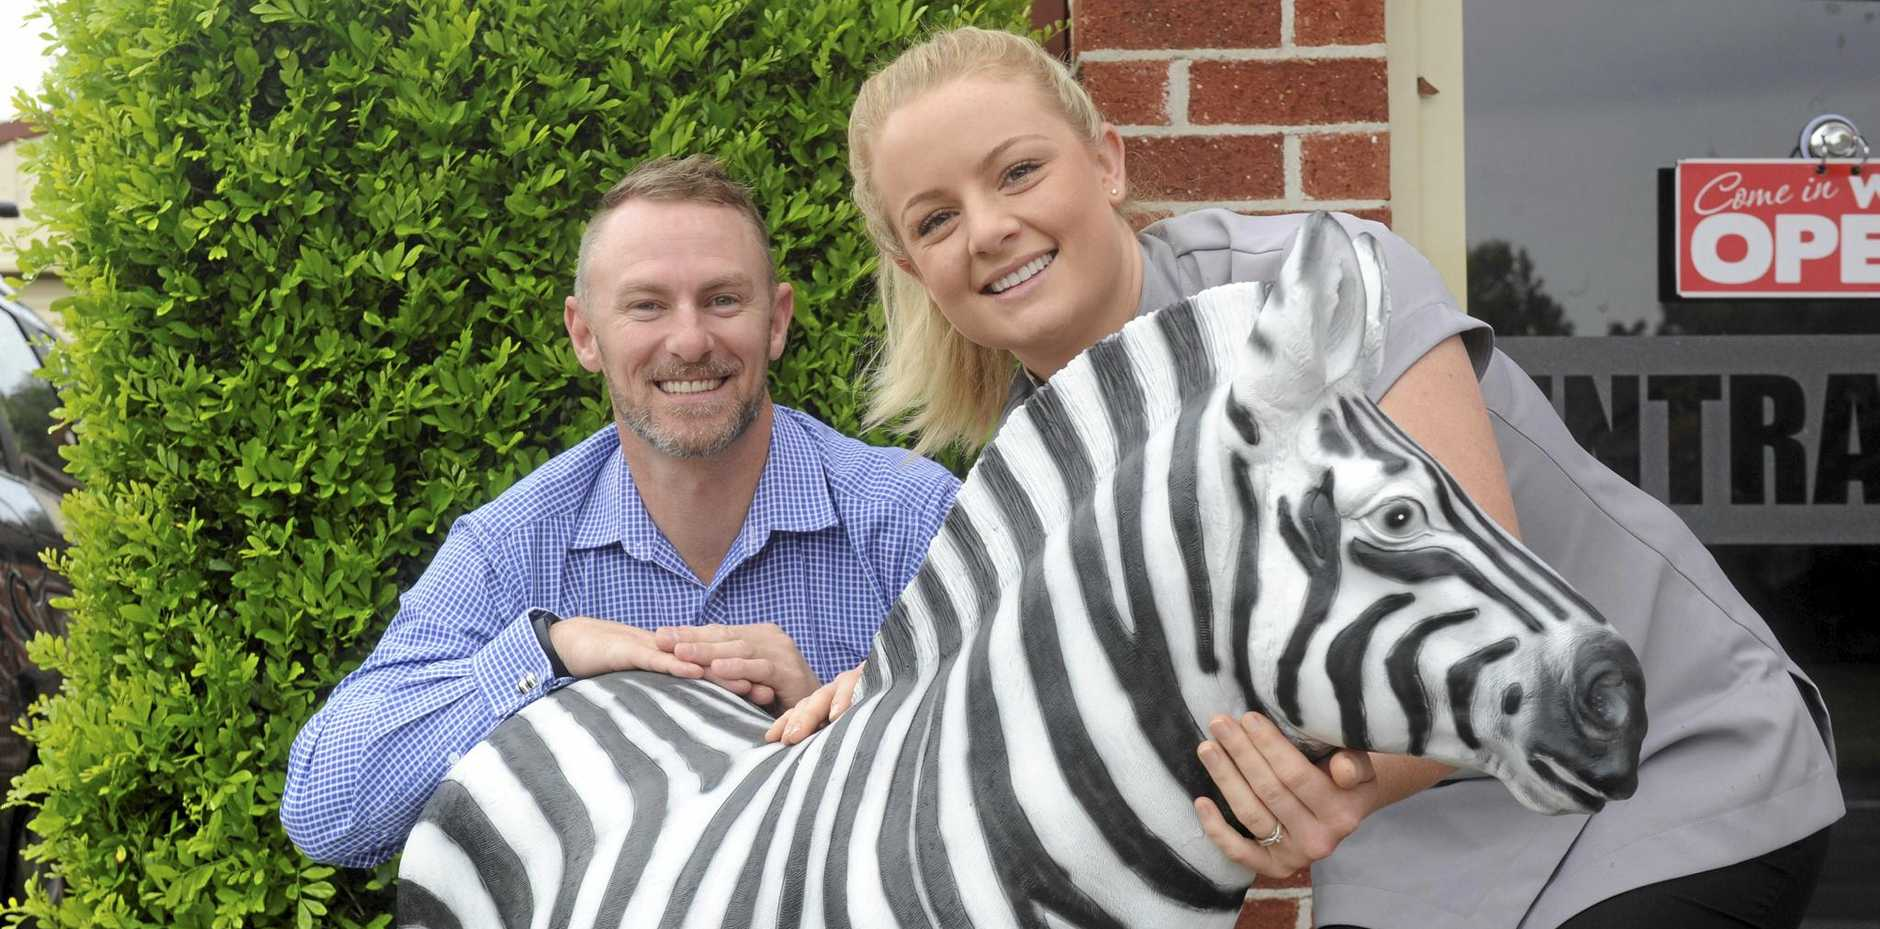 NAME GAME: Family Dental practice managers Ellie Bland and Dwarne McPhee welcome a new zebra to replace the one stolen earlier this month.